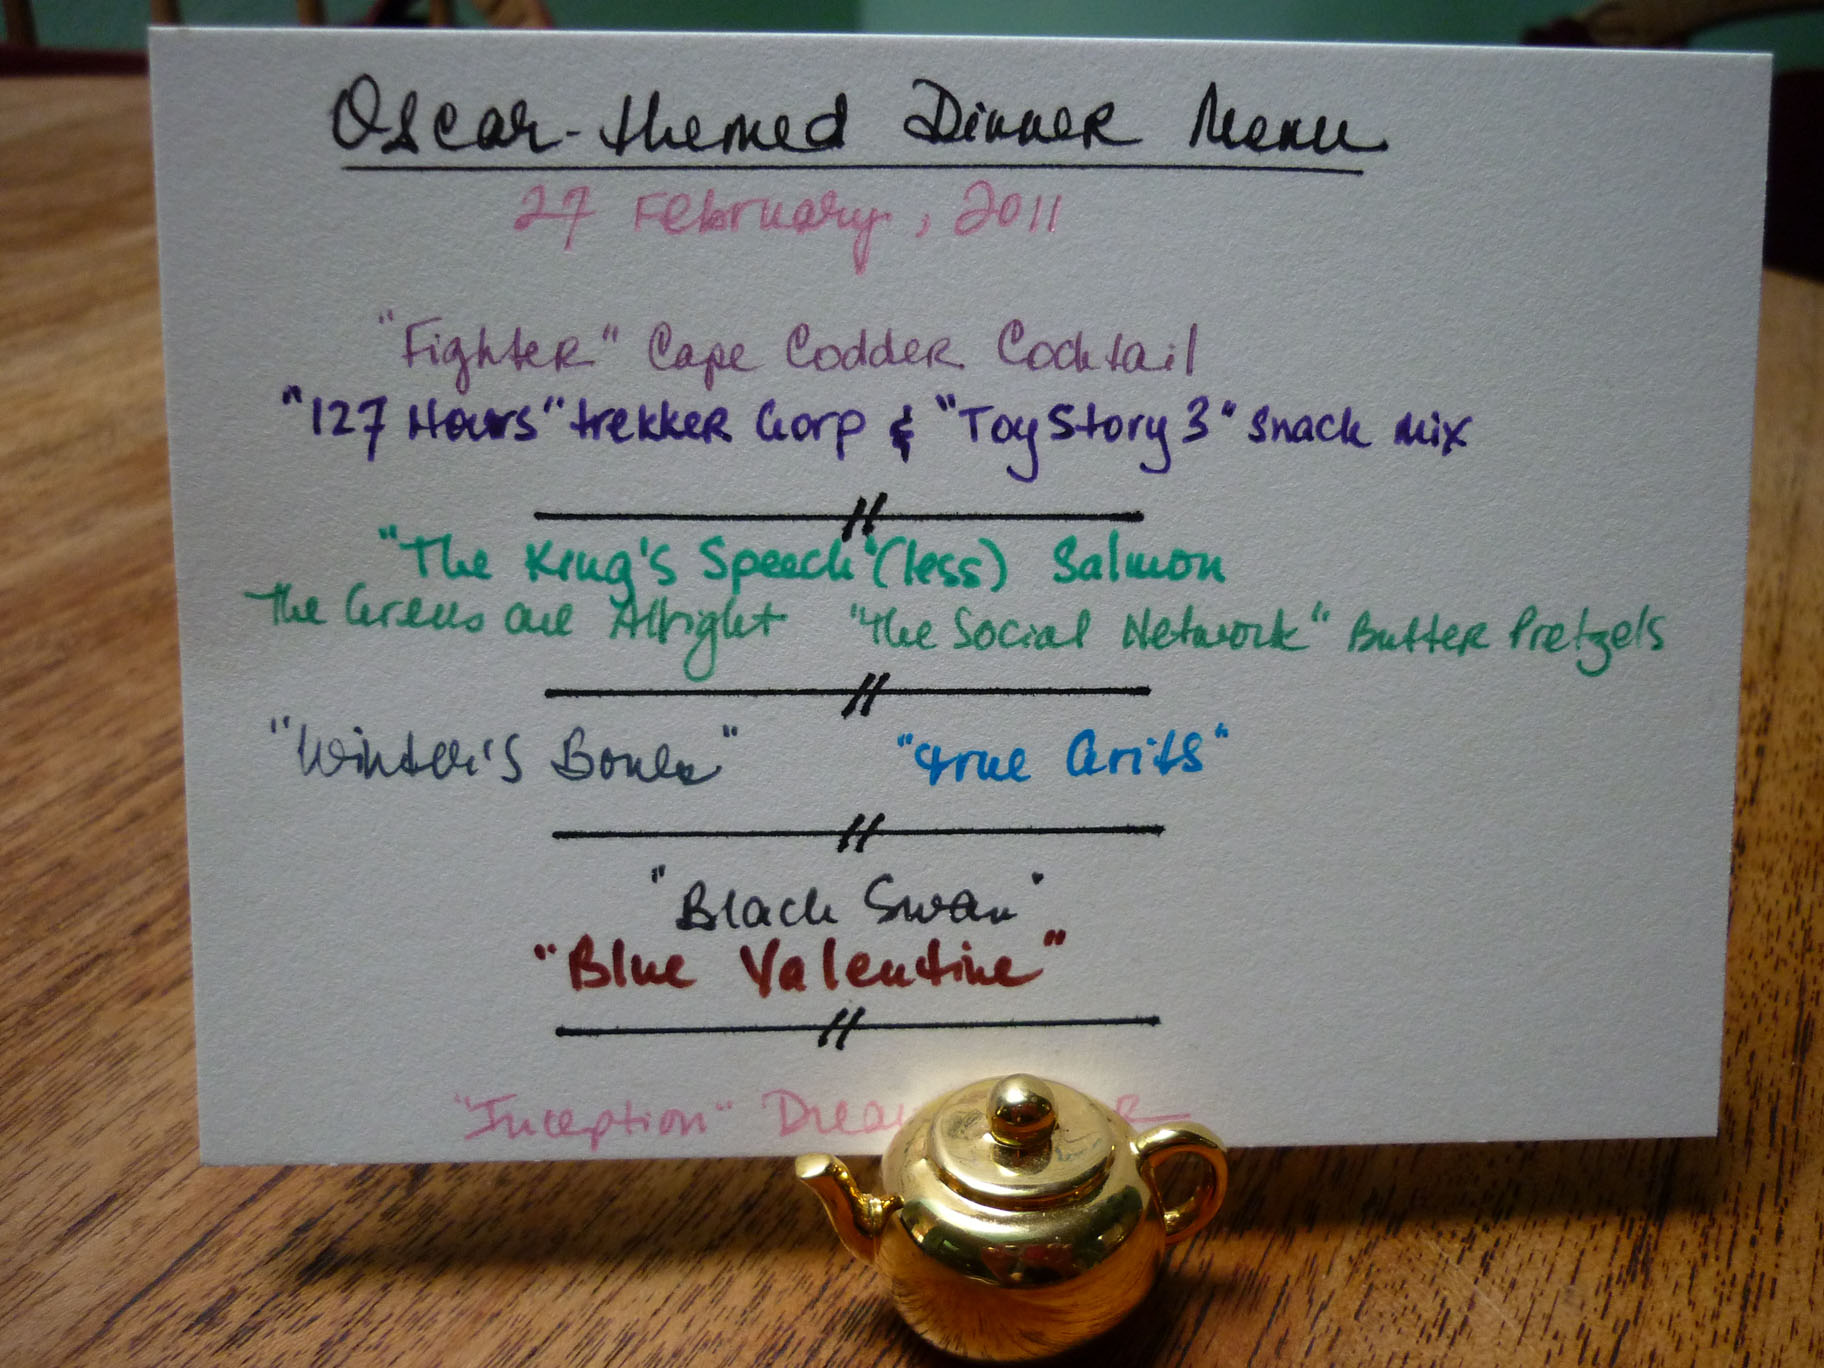 Oscar-Themed Dinner Menu